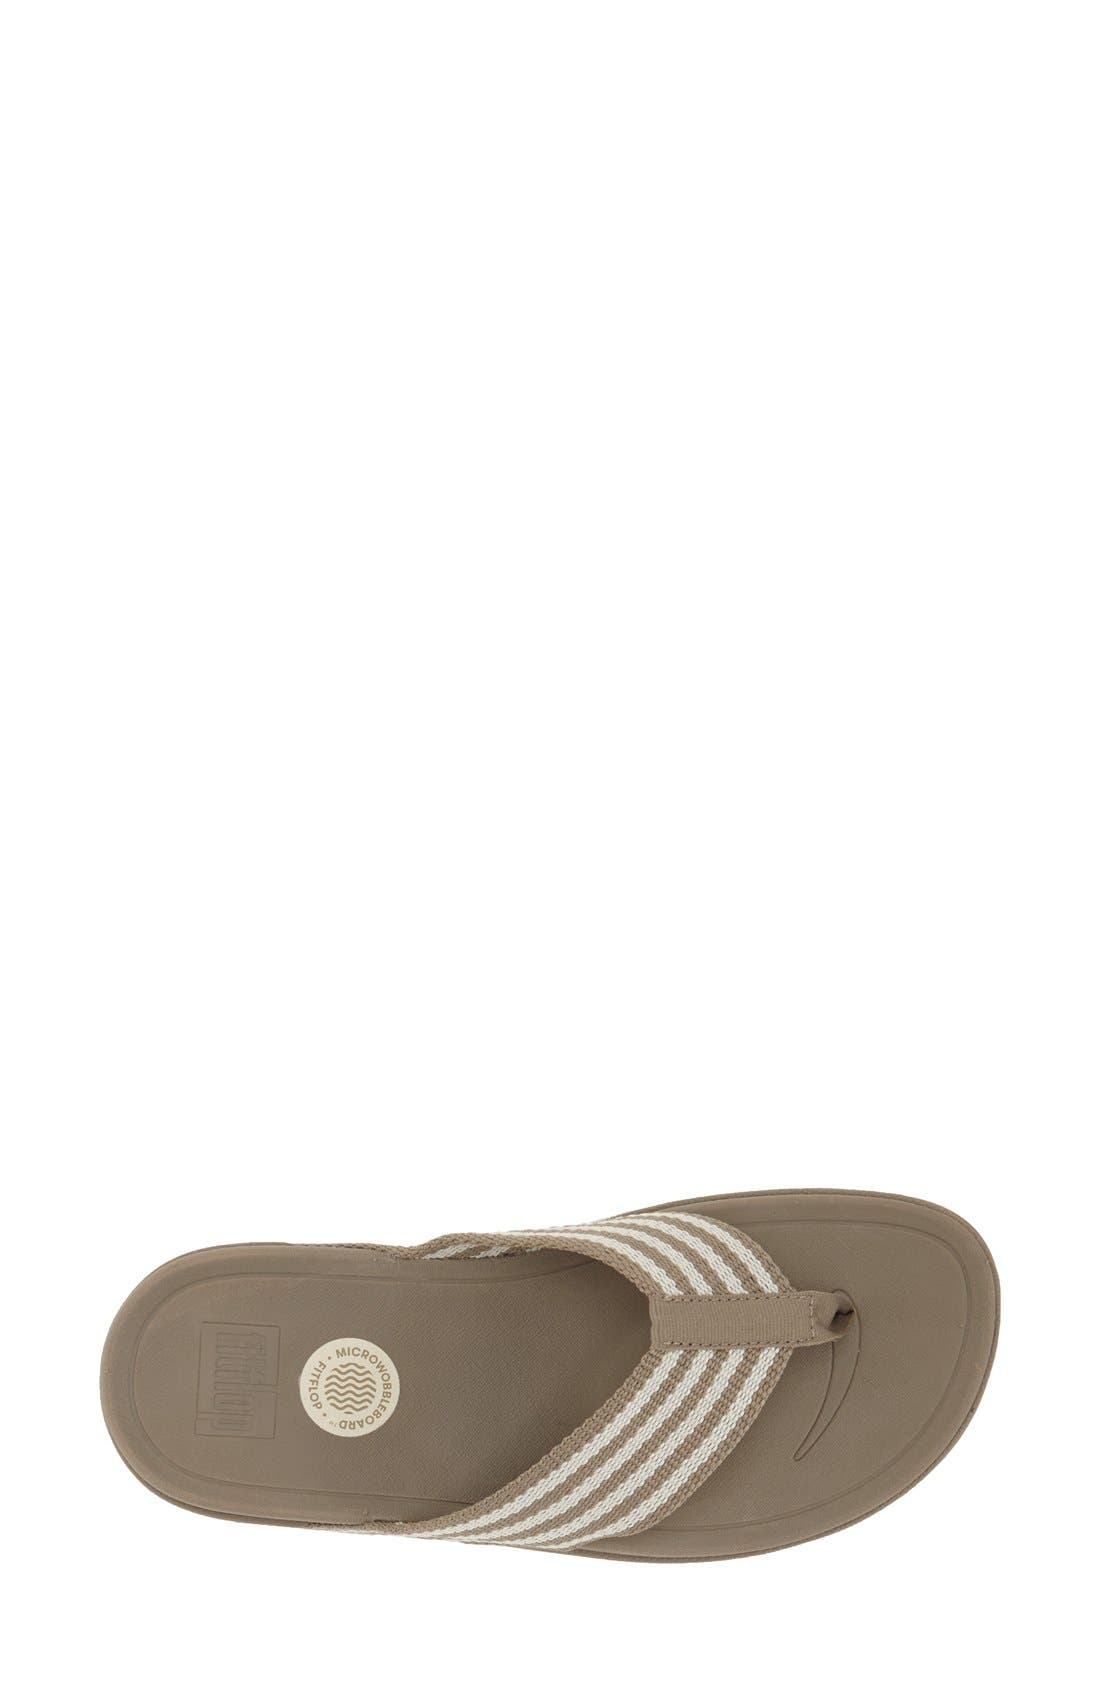 'Surfa' Thong Sandal,                             Alternate thumbnail 22, color,